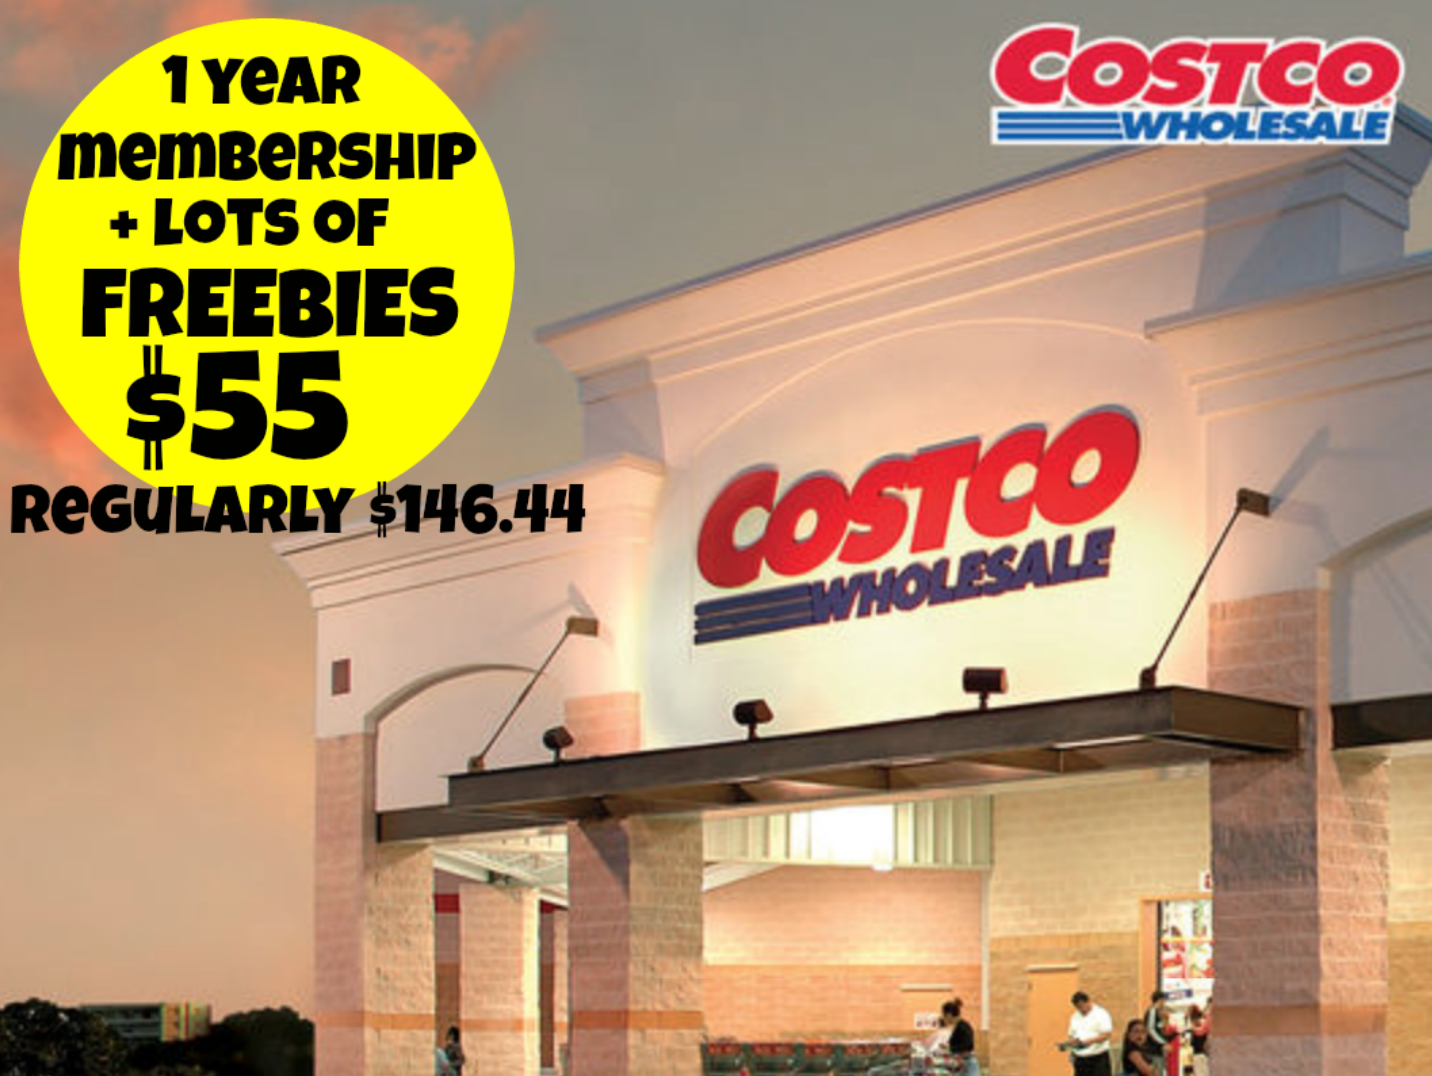 http://www.thebinderladies.com/2014/09/hot-costco-new-members-1-year.html